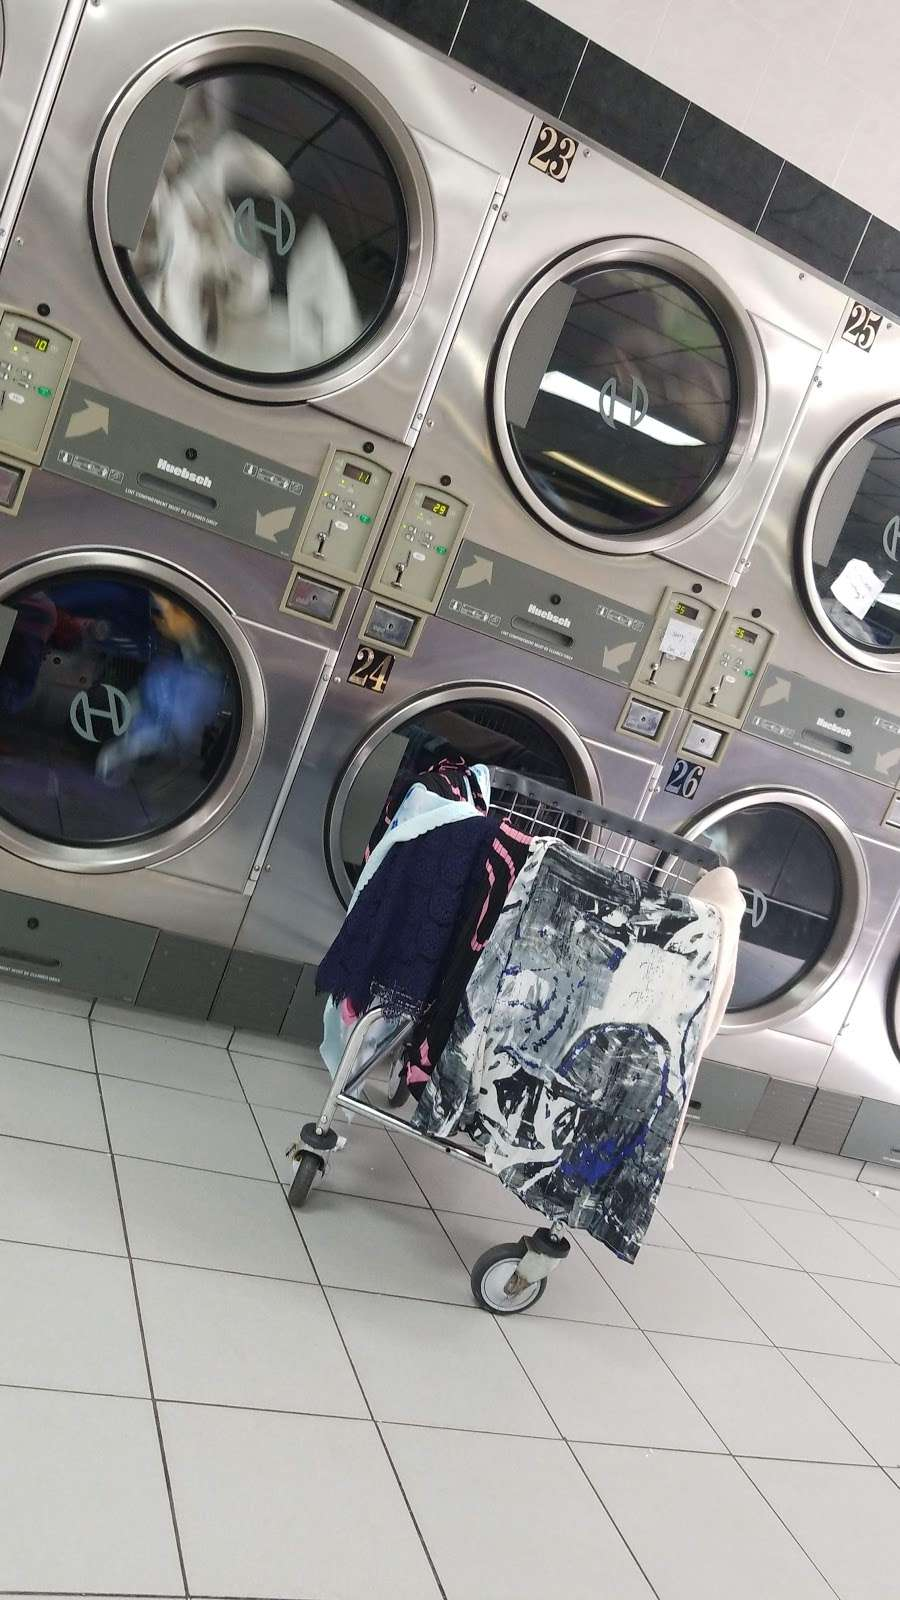 Hua Zhong Laundromat Inc - laundry  | Photo 1 of 1 | Address: 22030 Jamaica Ave, Queens Village, NY 11428, USA | Phone: (718) 454-8880